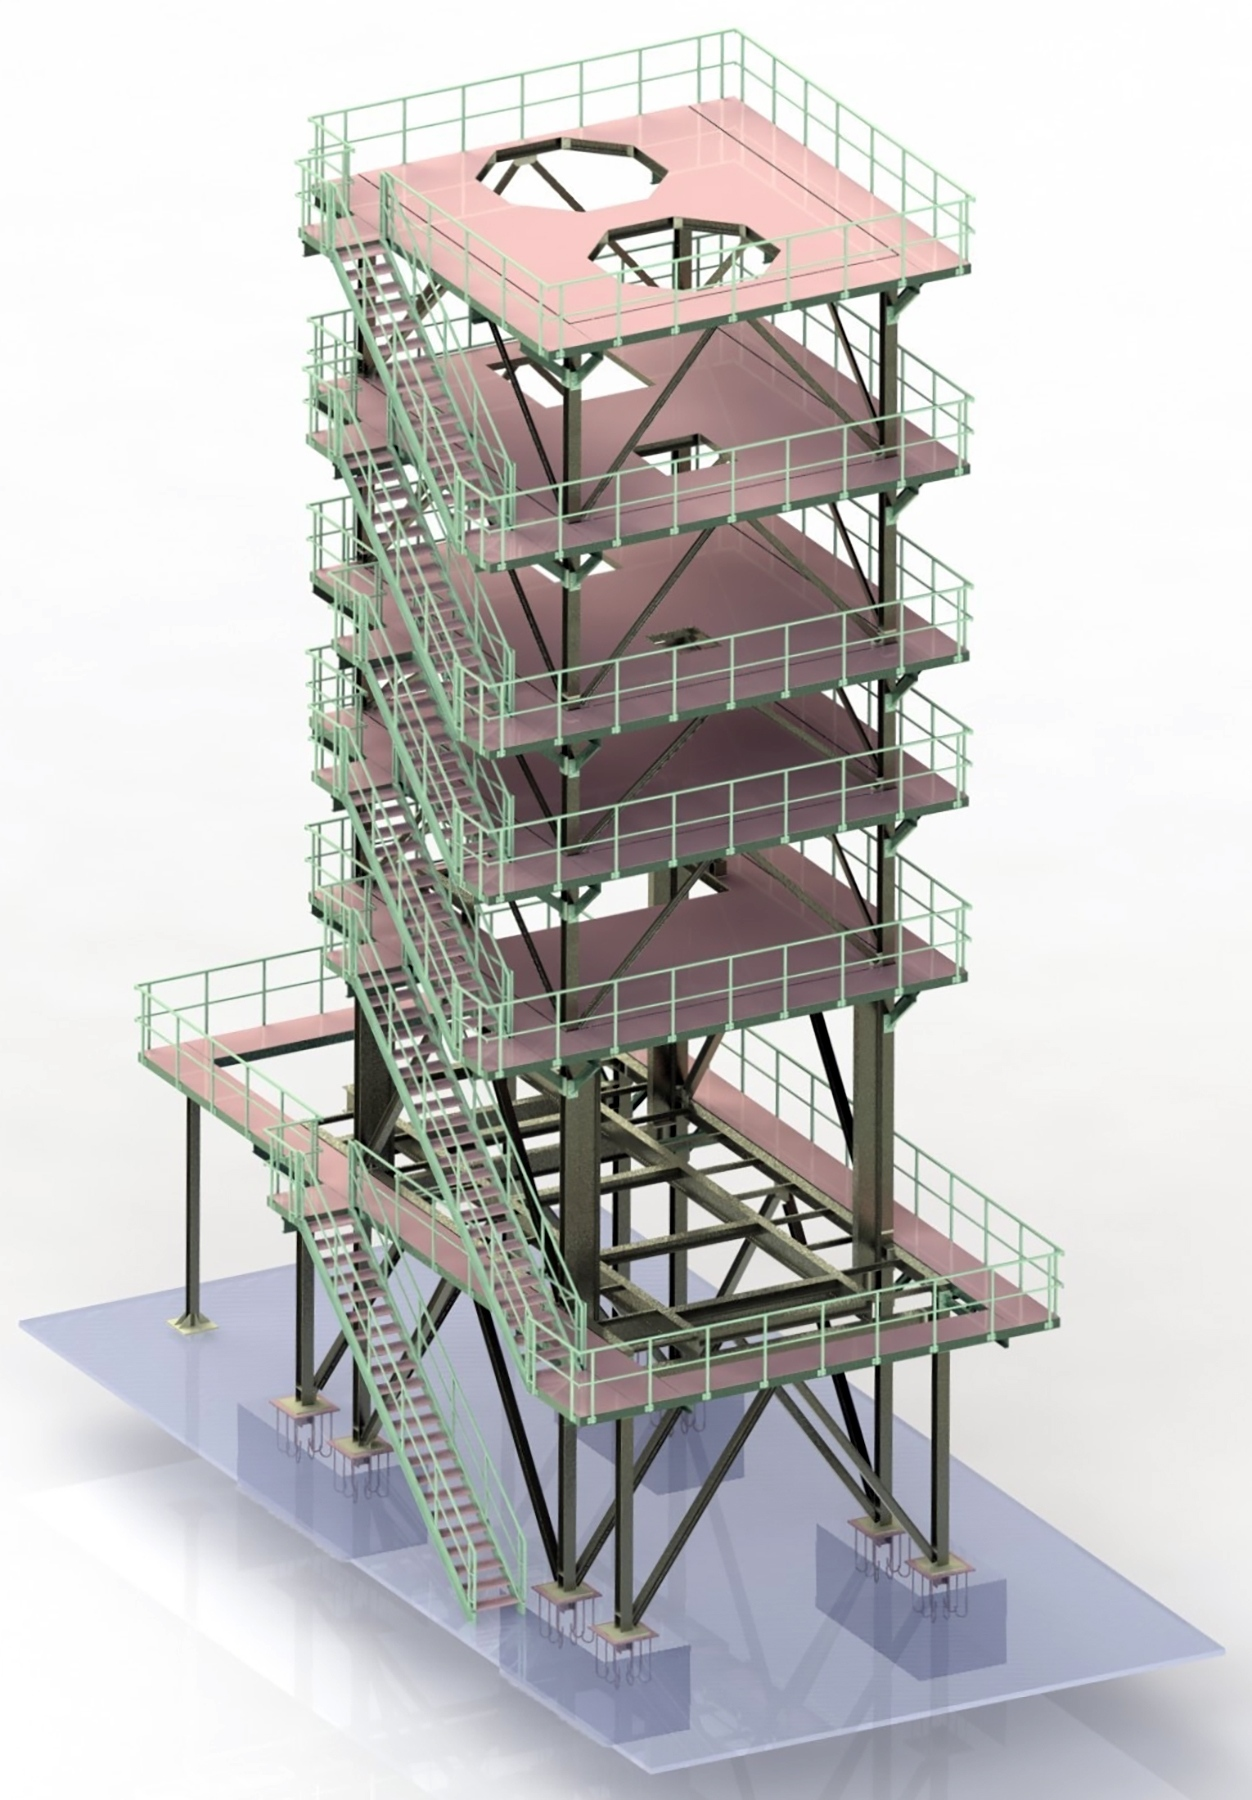 Planung Formingsection - RODO Construction GmbH